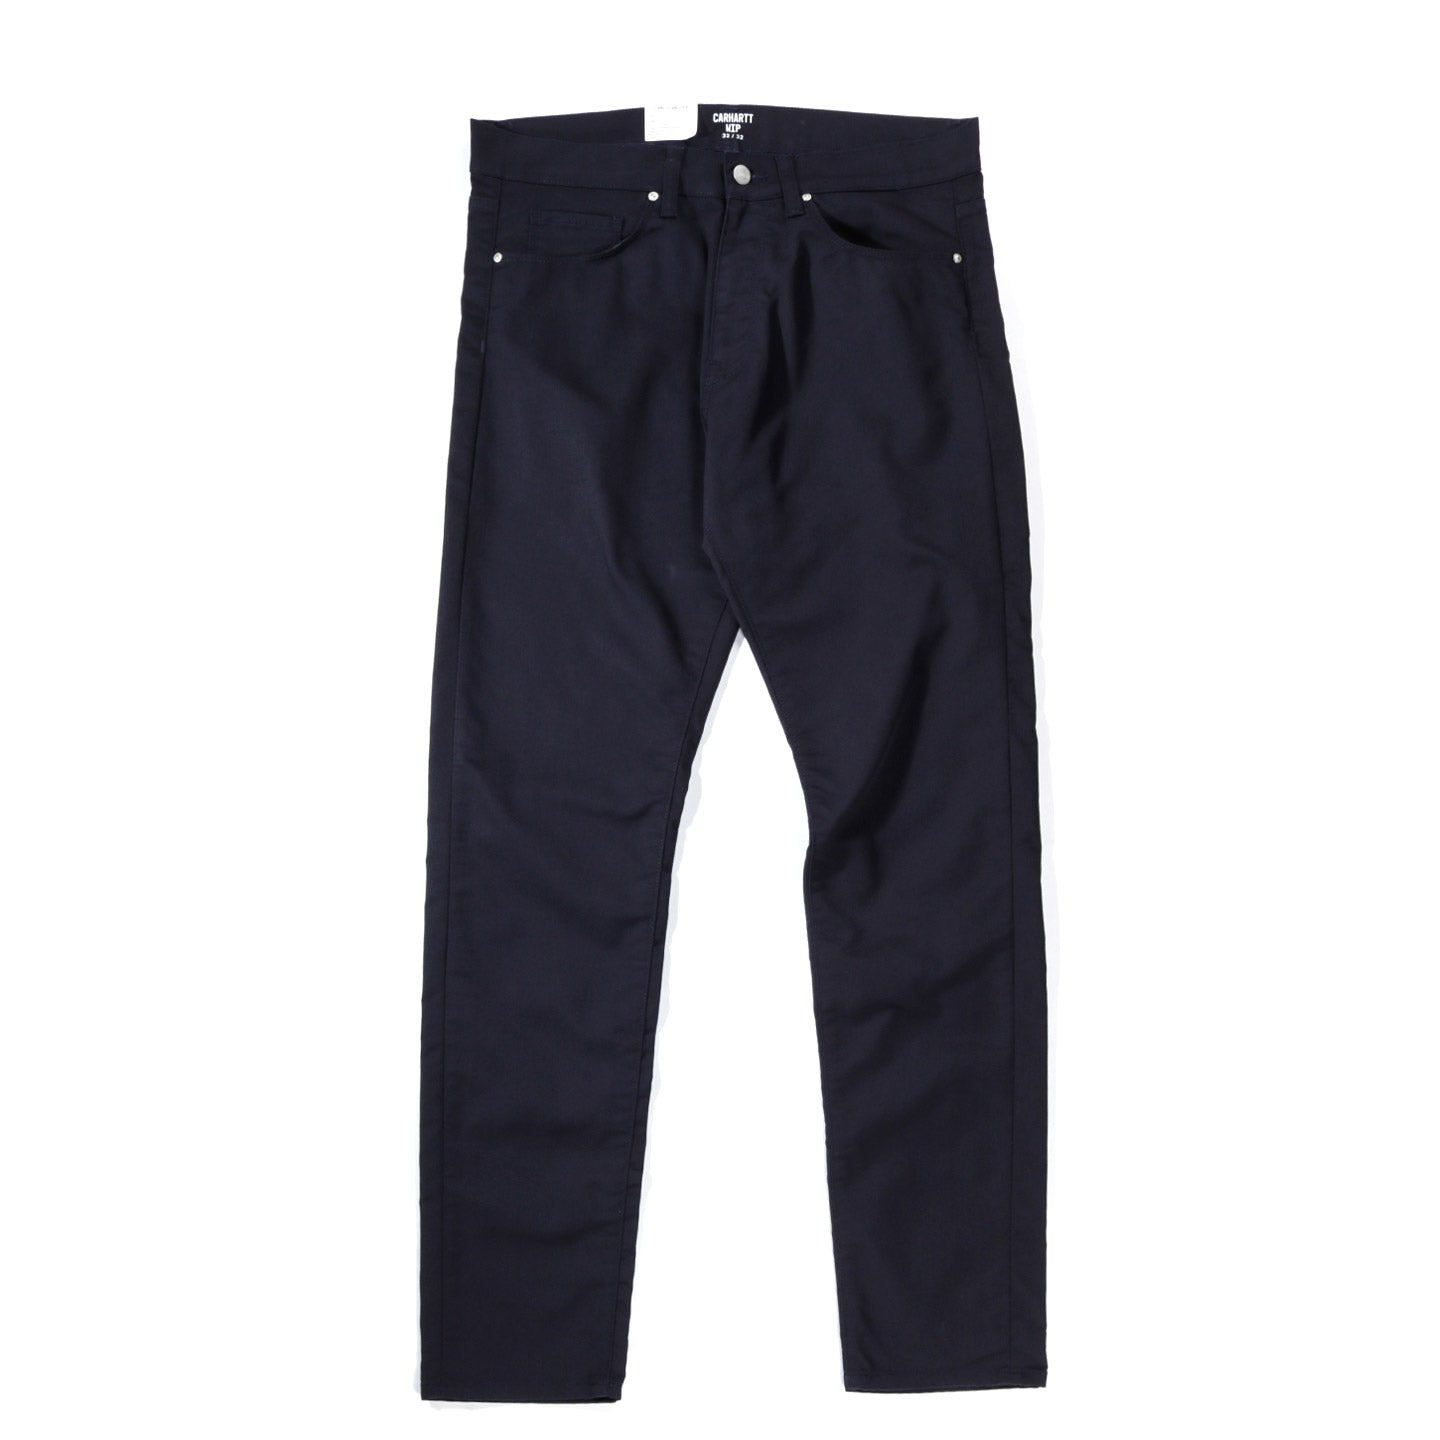 CARHARTT WIP VICIOUS PANT 'LAMAR' STRETCH TWILL DARK NAVY